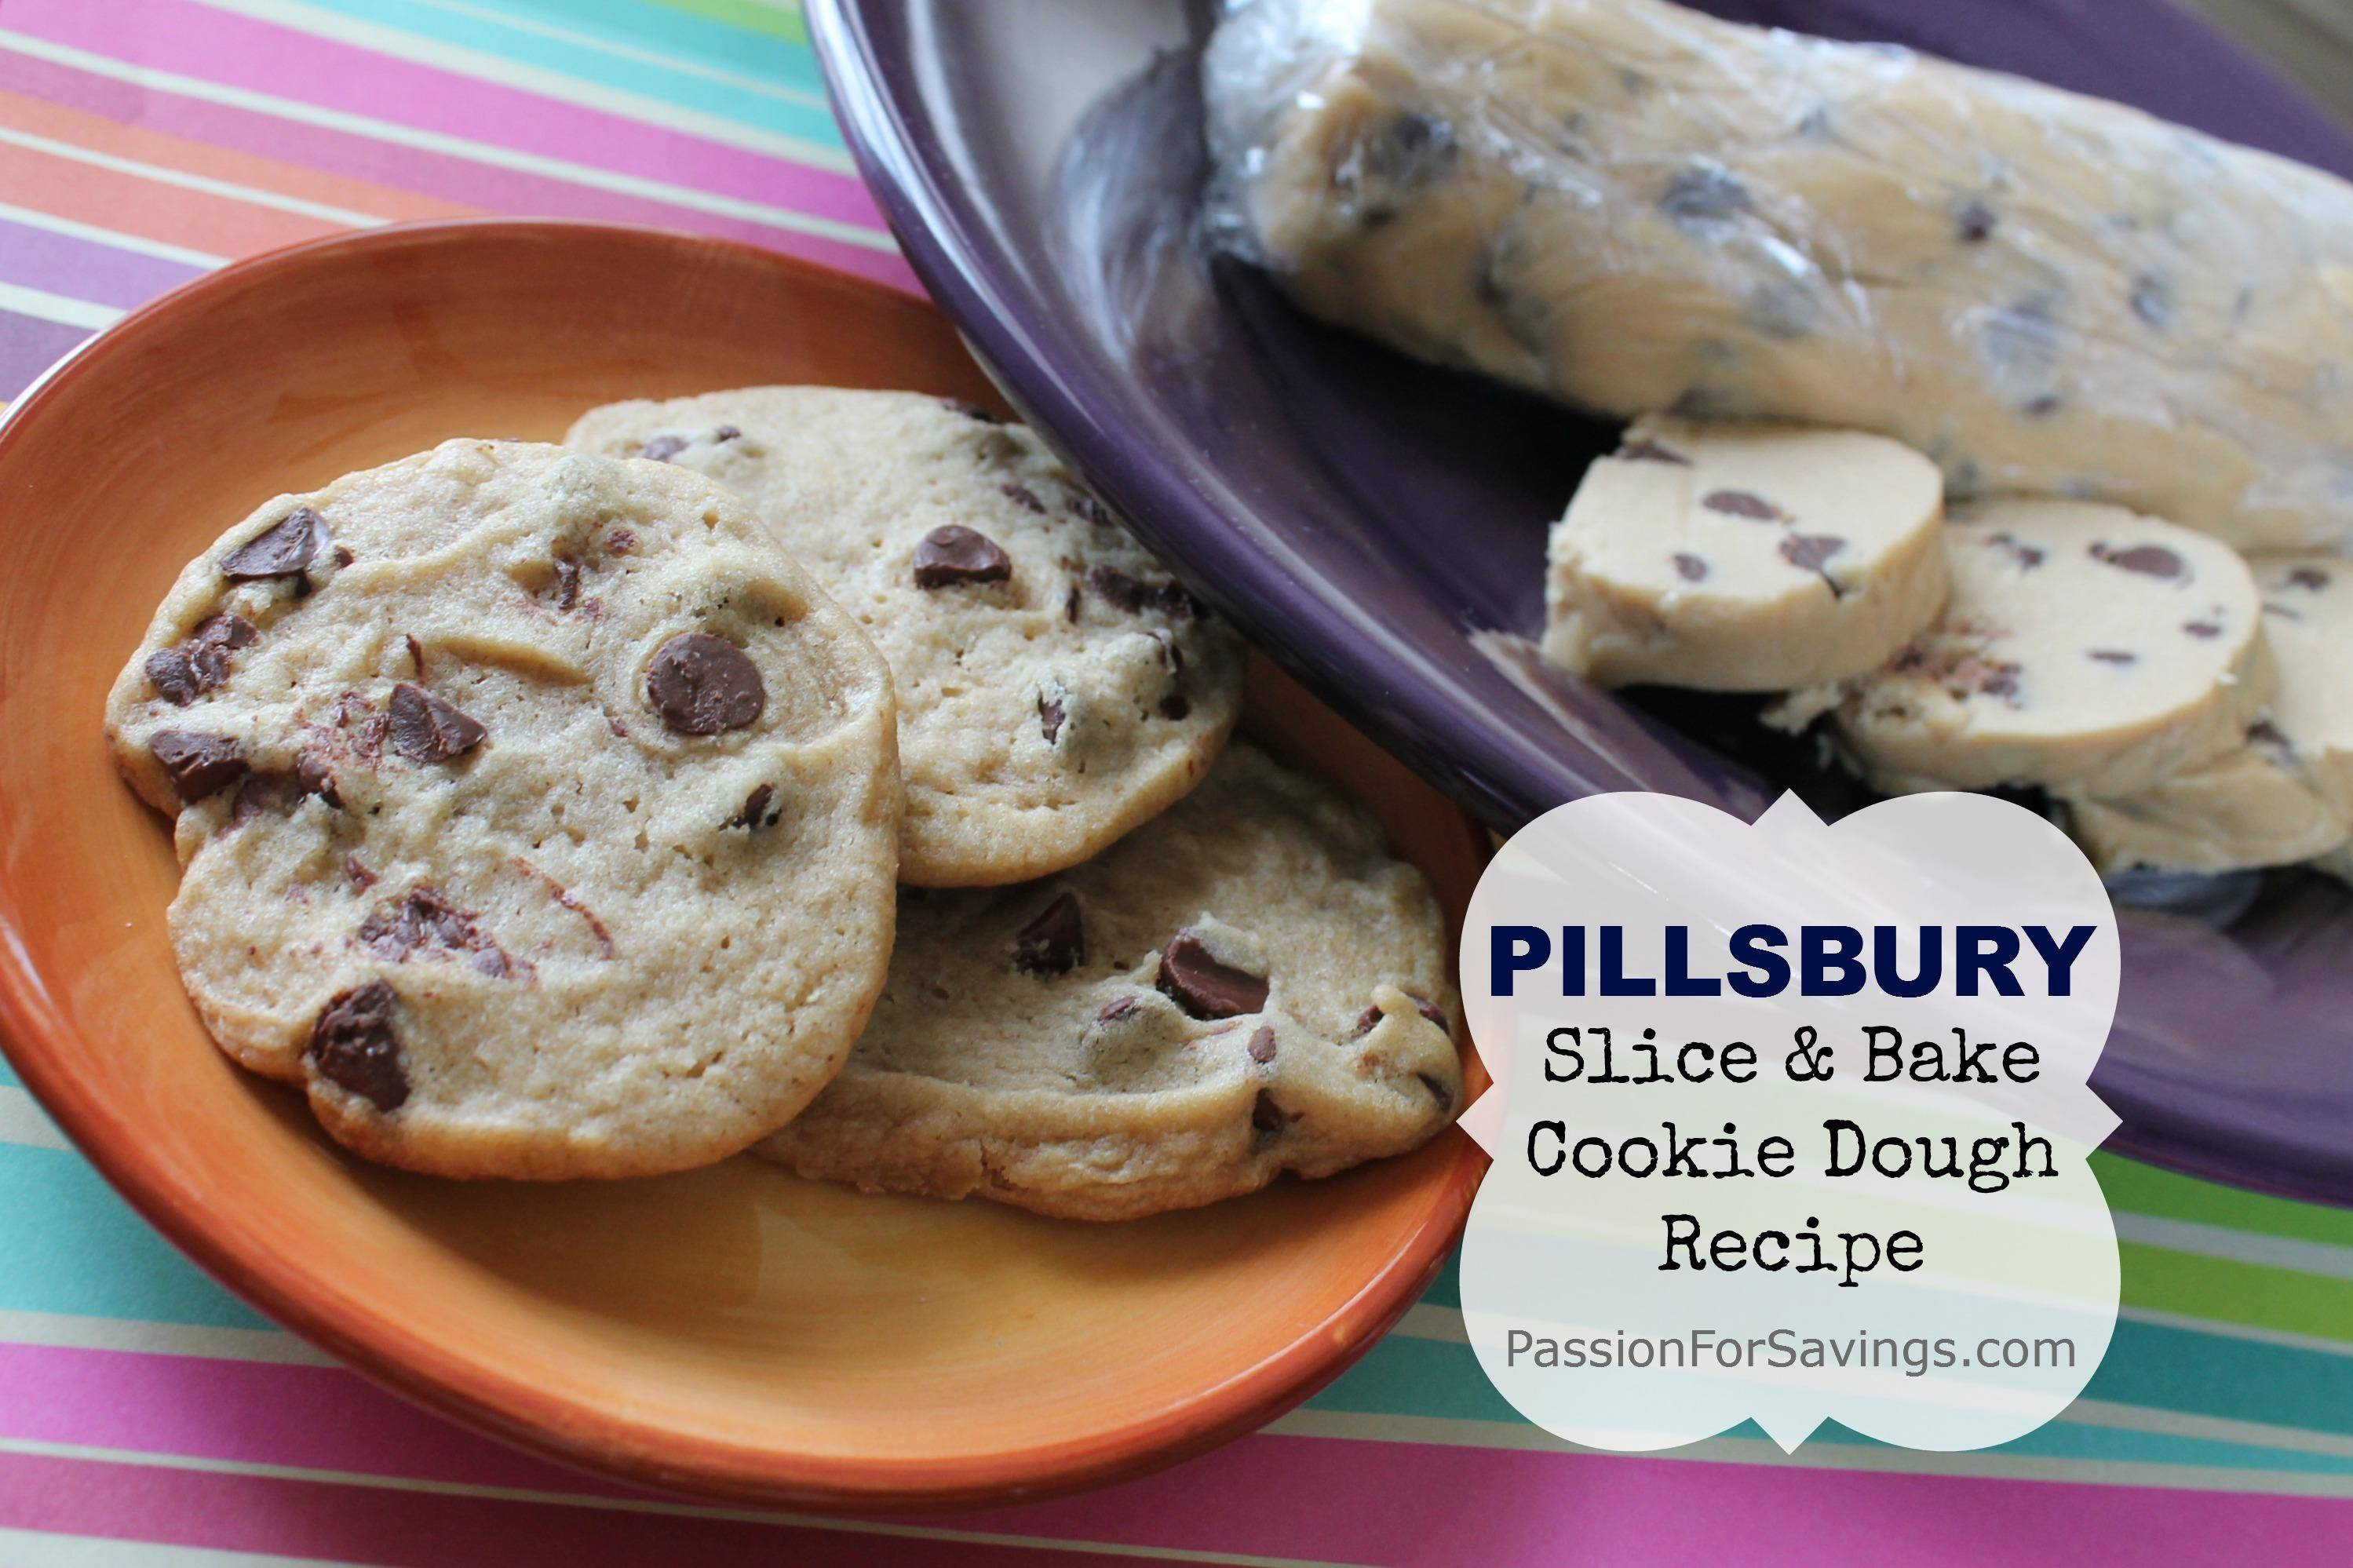 Pillsbury Chocolate Chip Cookie Dough Recipe